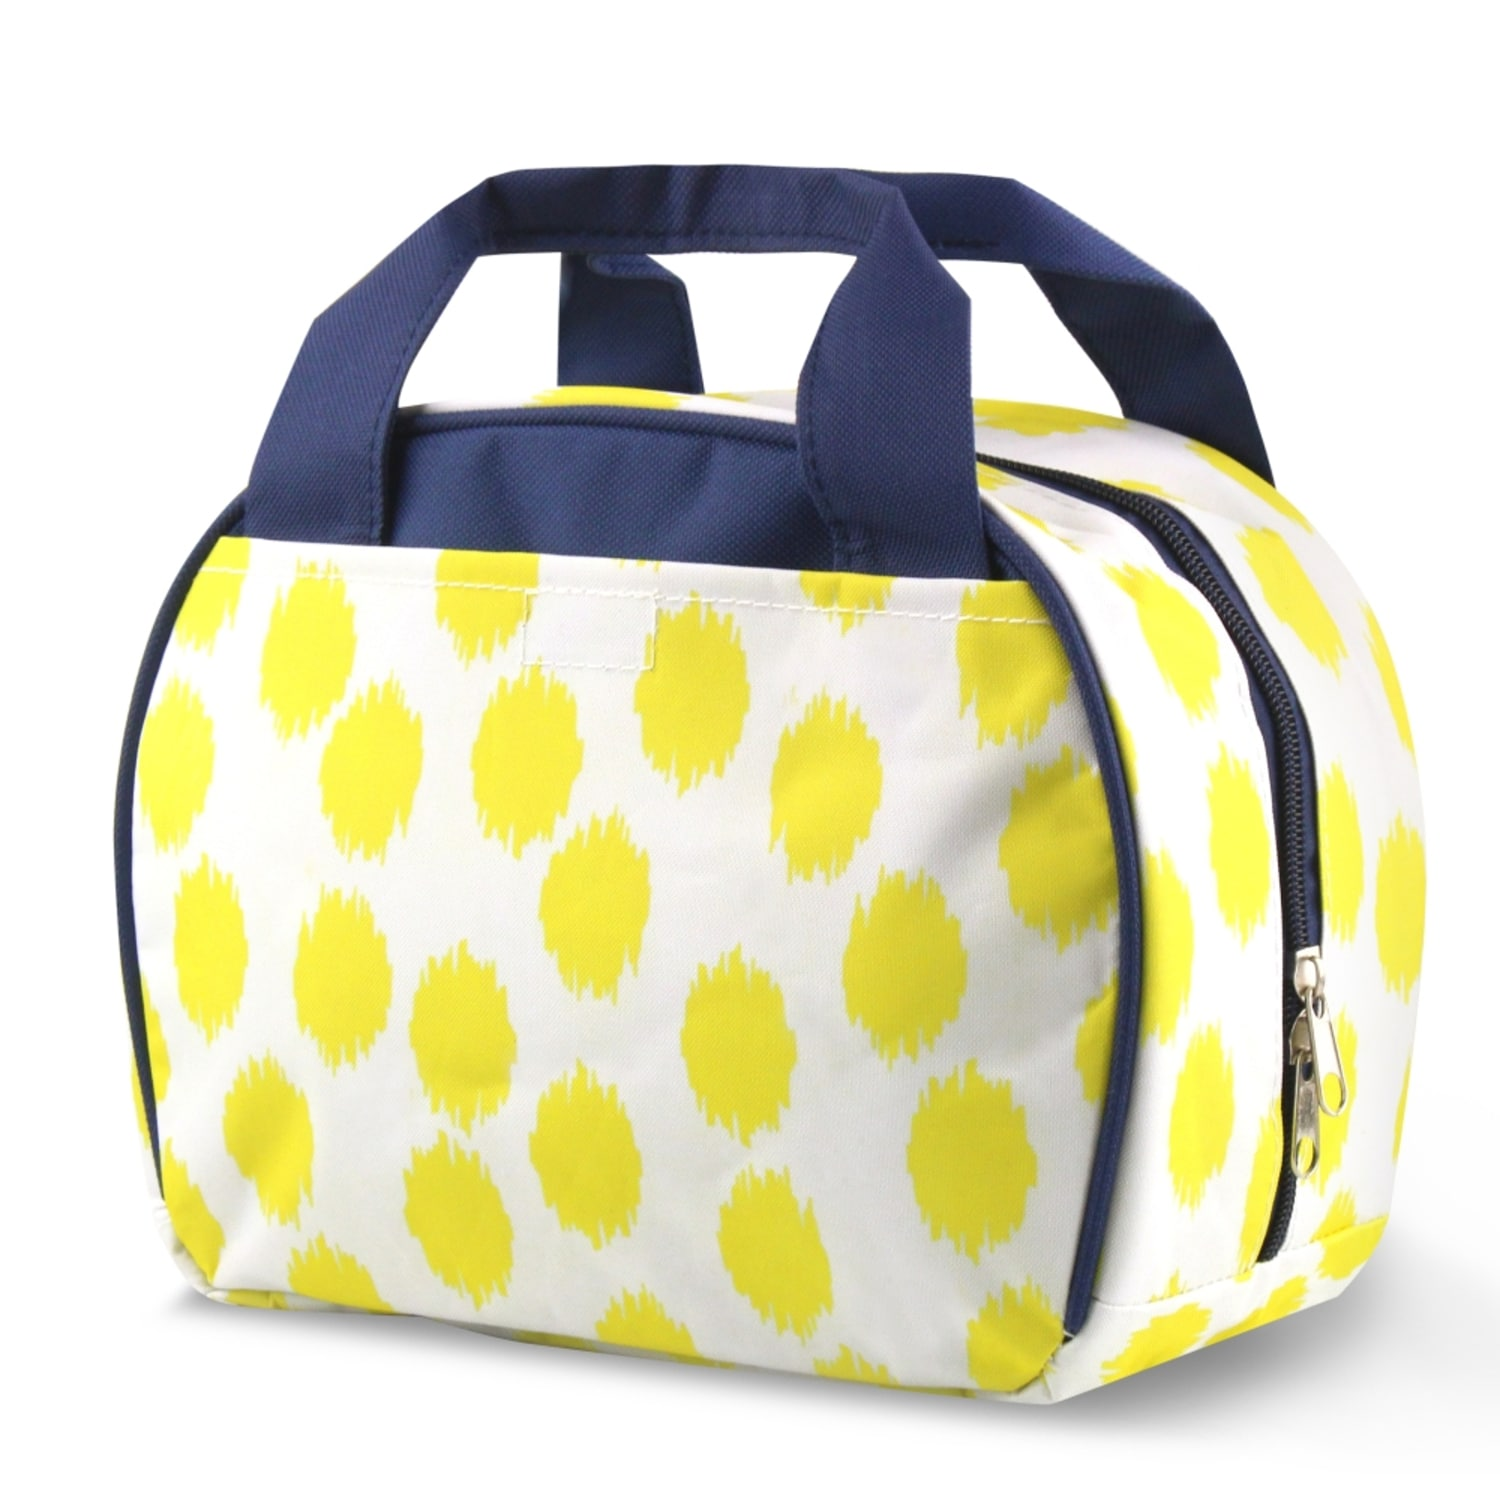 Zodaca Yellow Dots with Blue Trim Small Reusable Insulate...